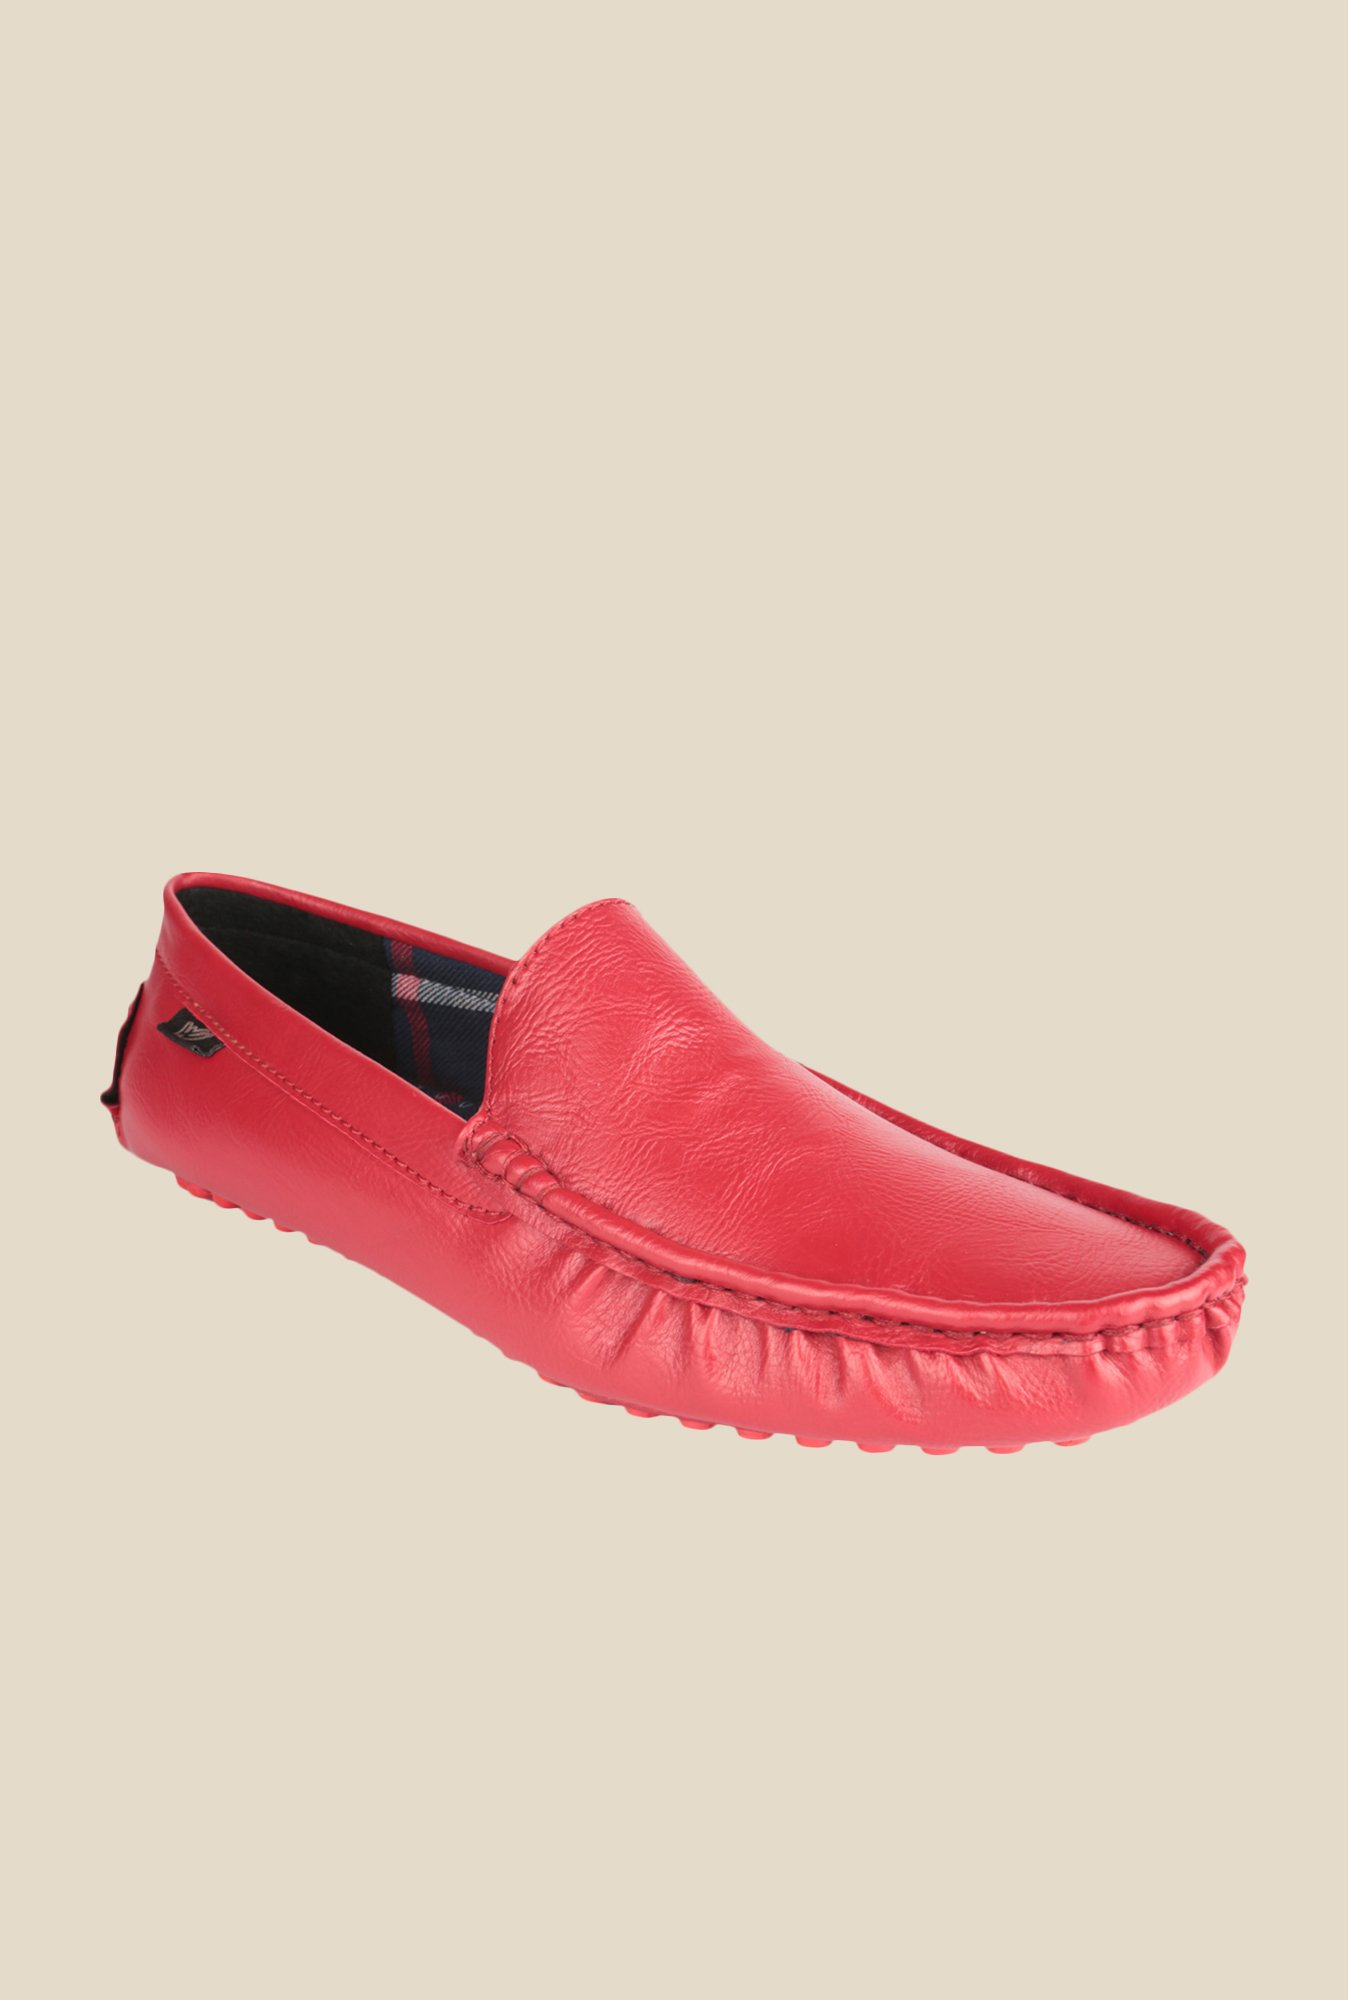 Wega Life Febe Red Loafers